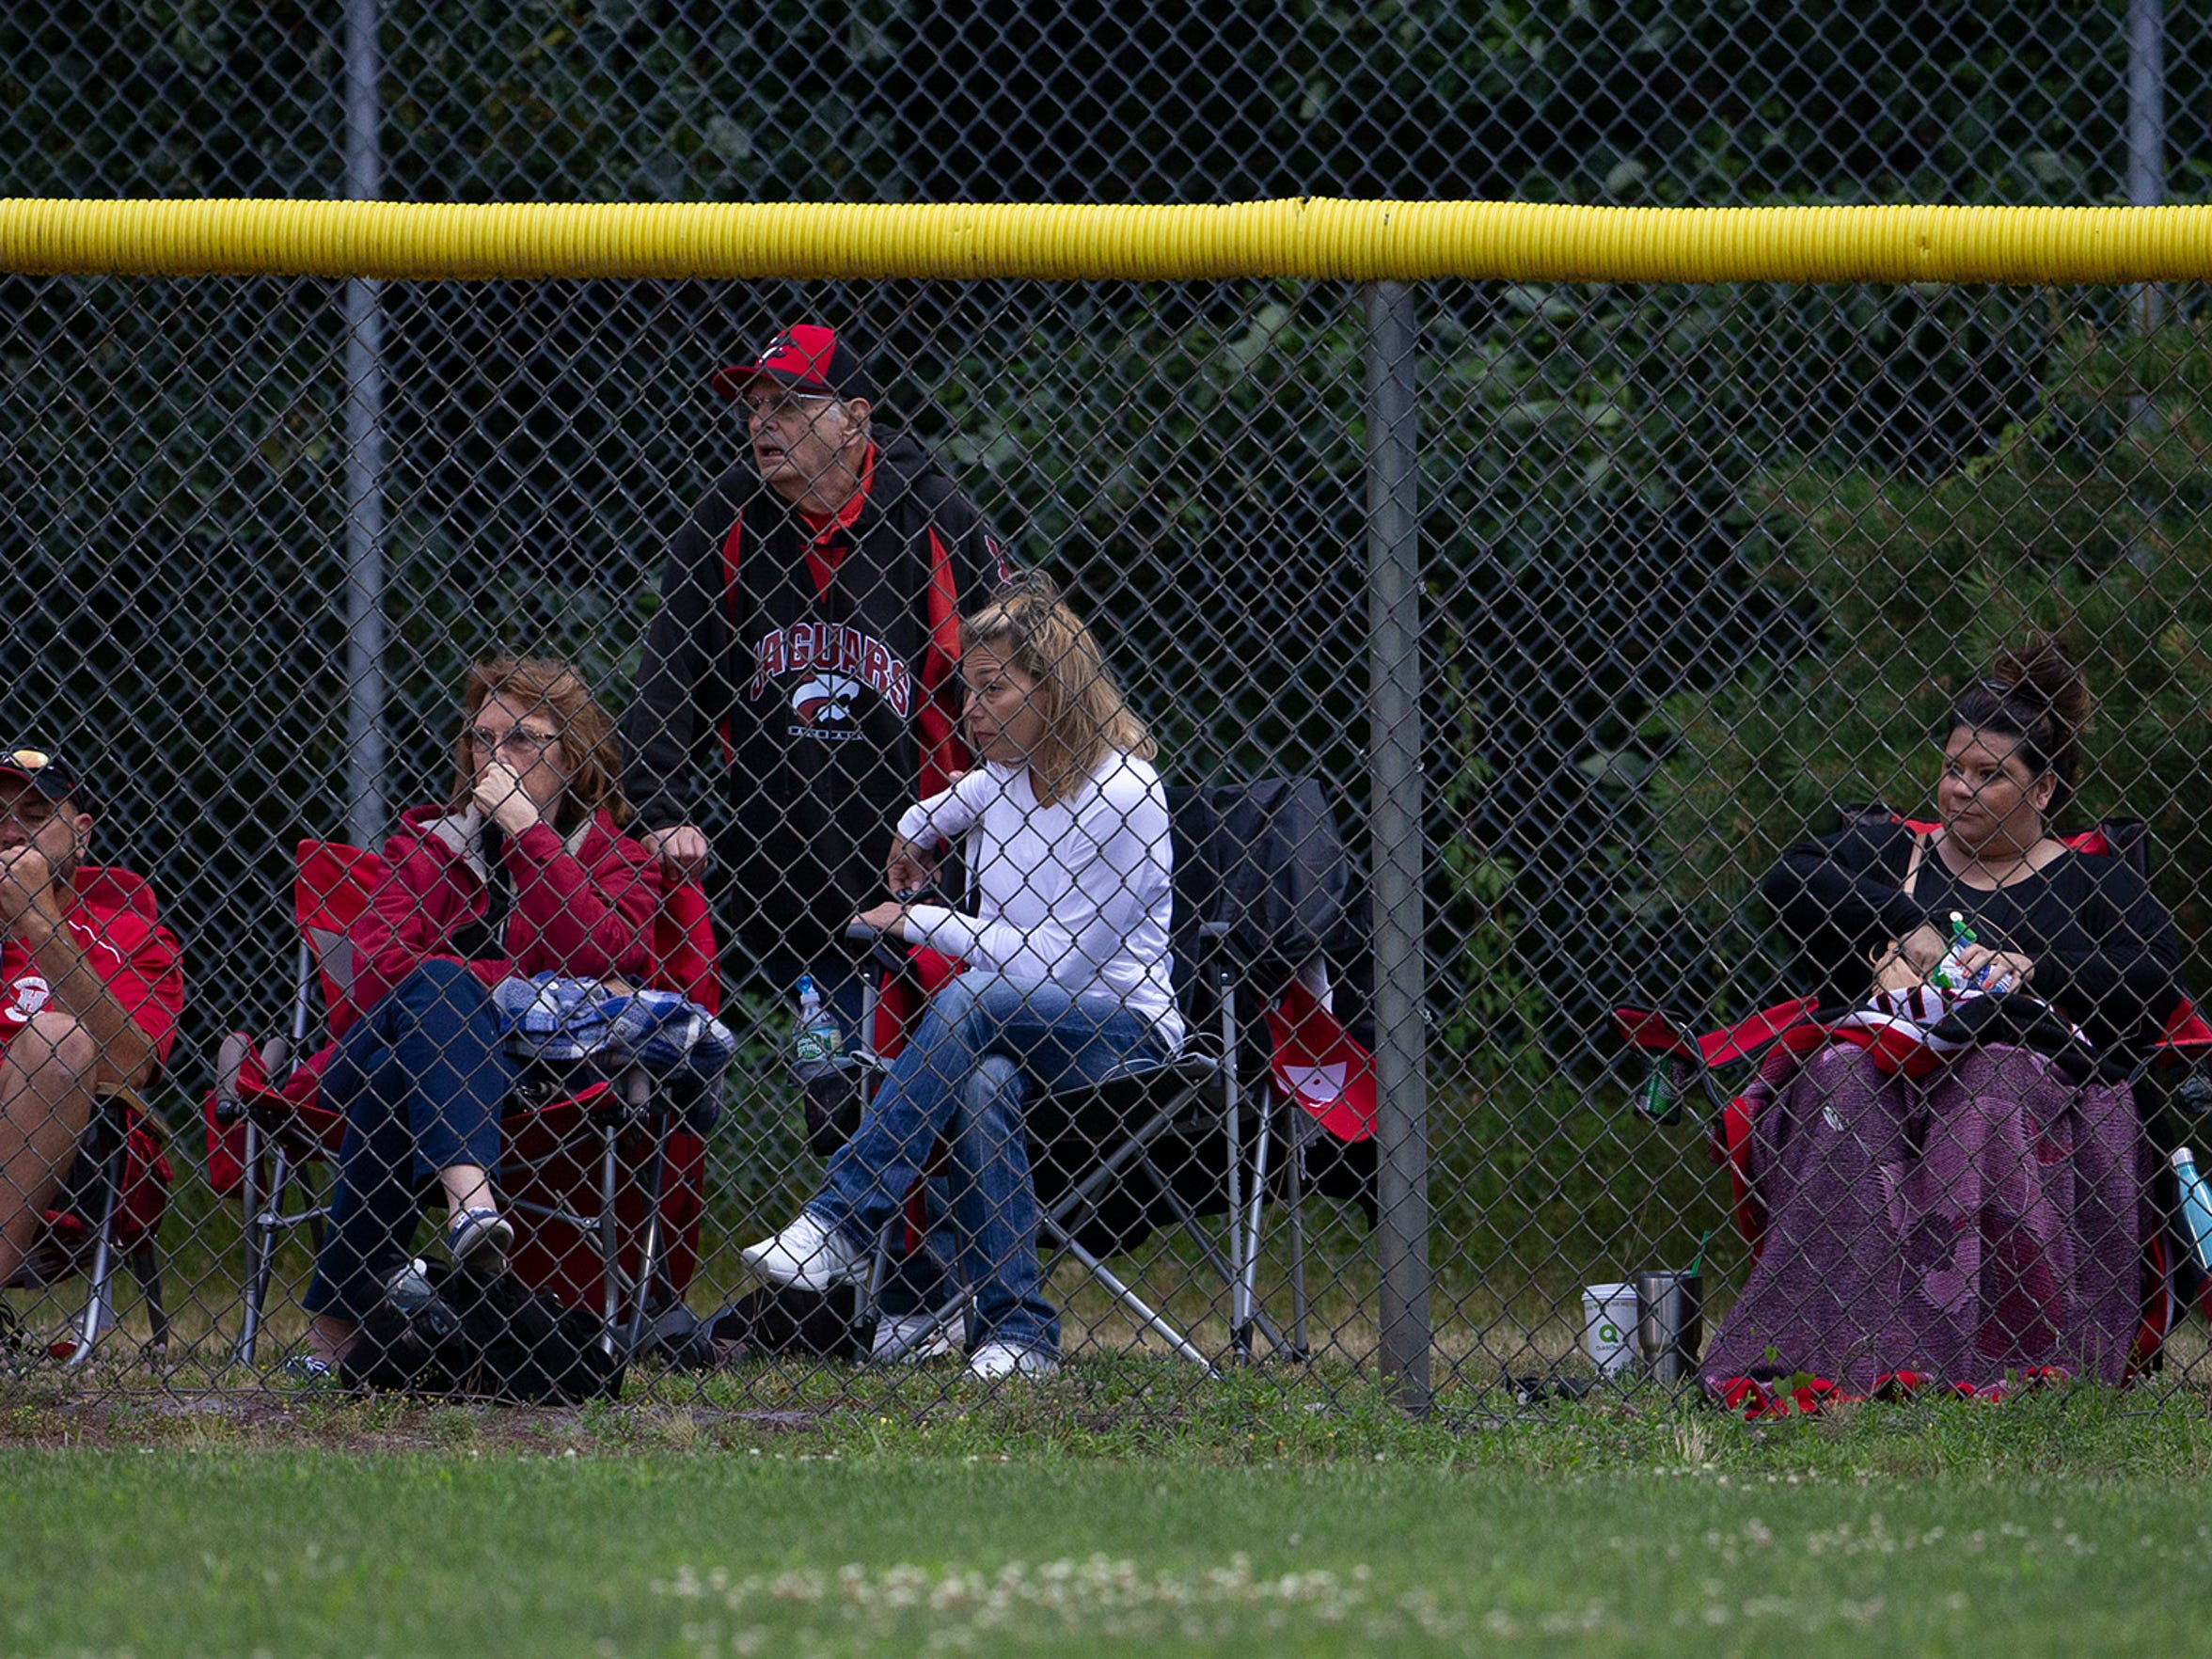 Parents and fans watch the action between Brick and Holbrook Little League teams in June 2018.